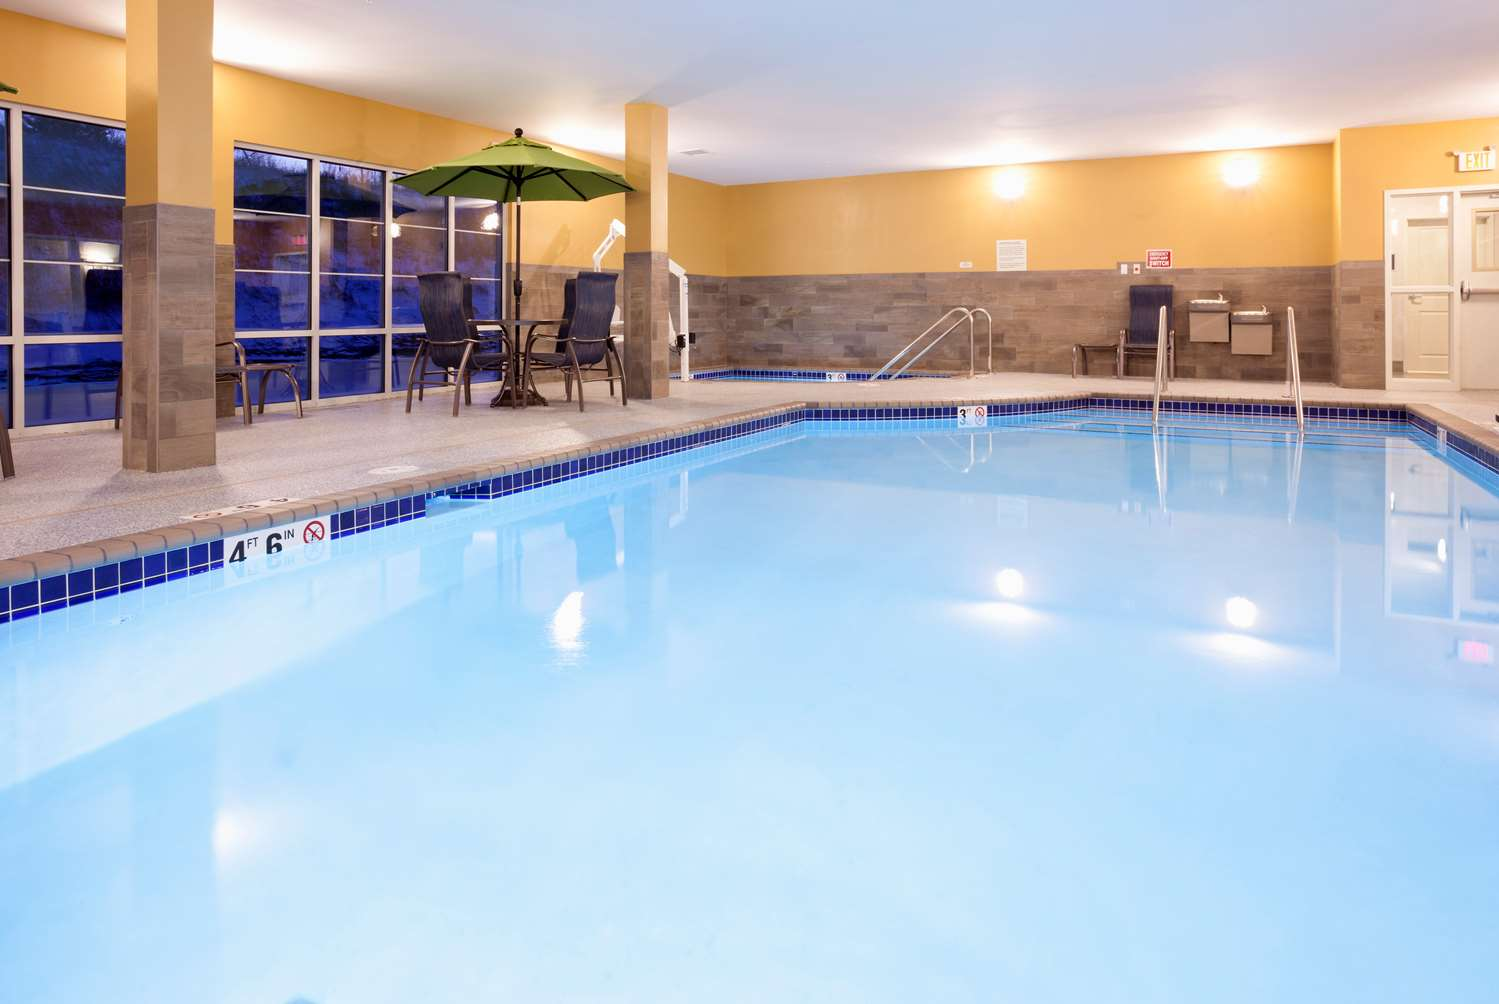 Pool - GrandStay Hotel & Suites Cannon Falls